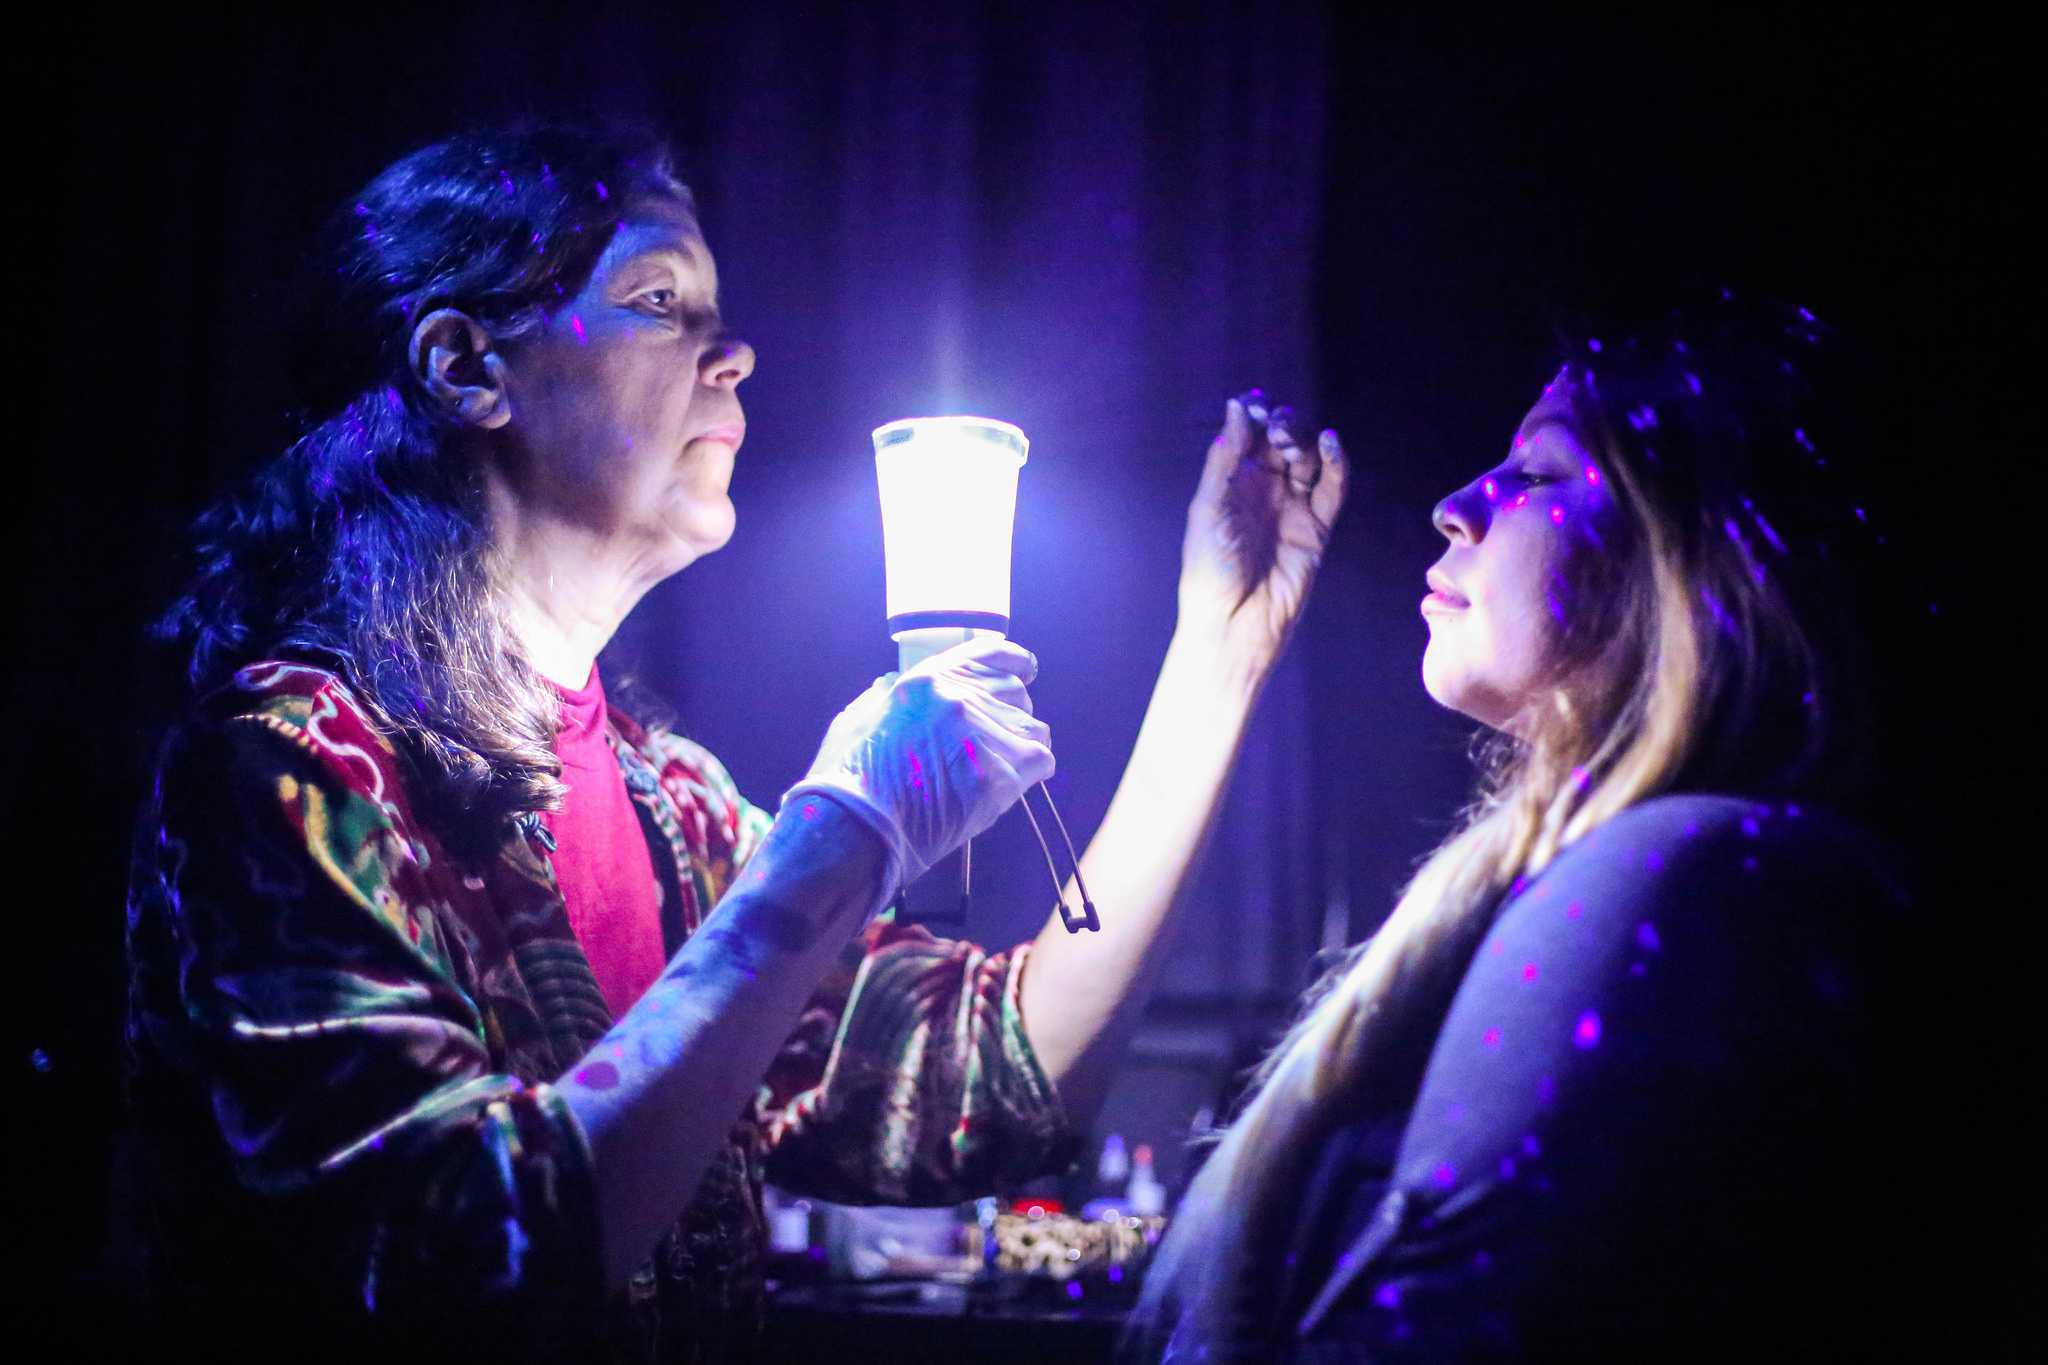 Stacey Dennick owner of Auntie Stacey's Face Painting holds a light in front of Carolina Martinez's face durring a face painting session   at the Dia De Los Muertos Fundraising event for All Hands organization at the Raven Bar Wednesday, Nov. 5, 2015. (Angelica Ekeke / Xpress)